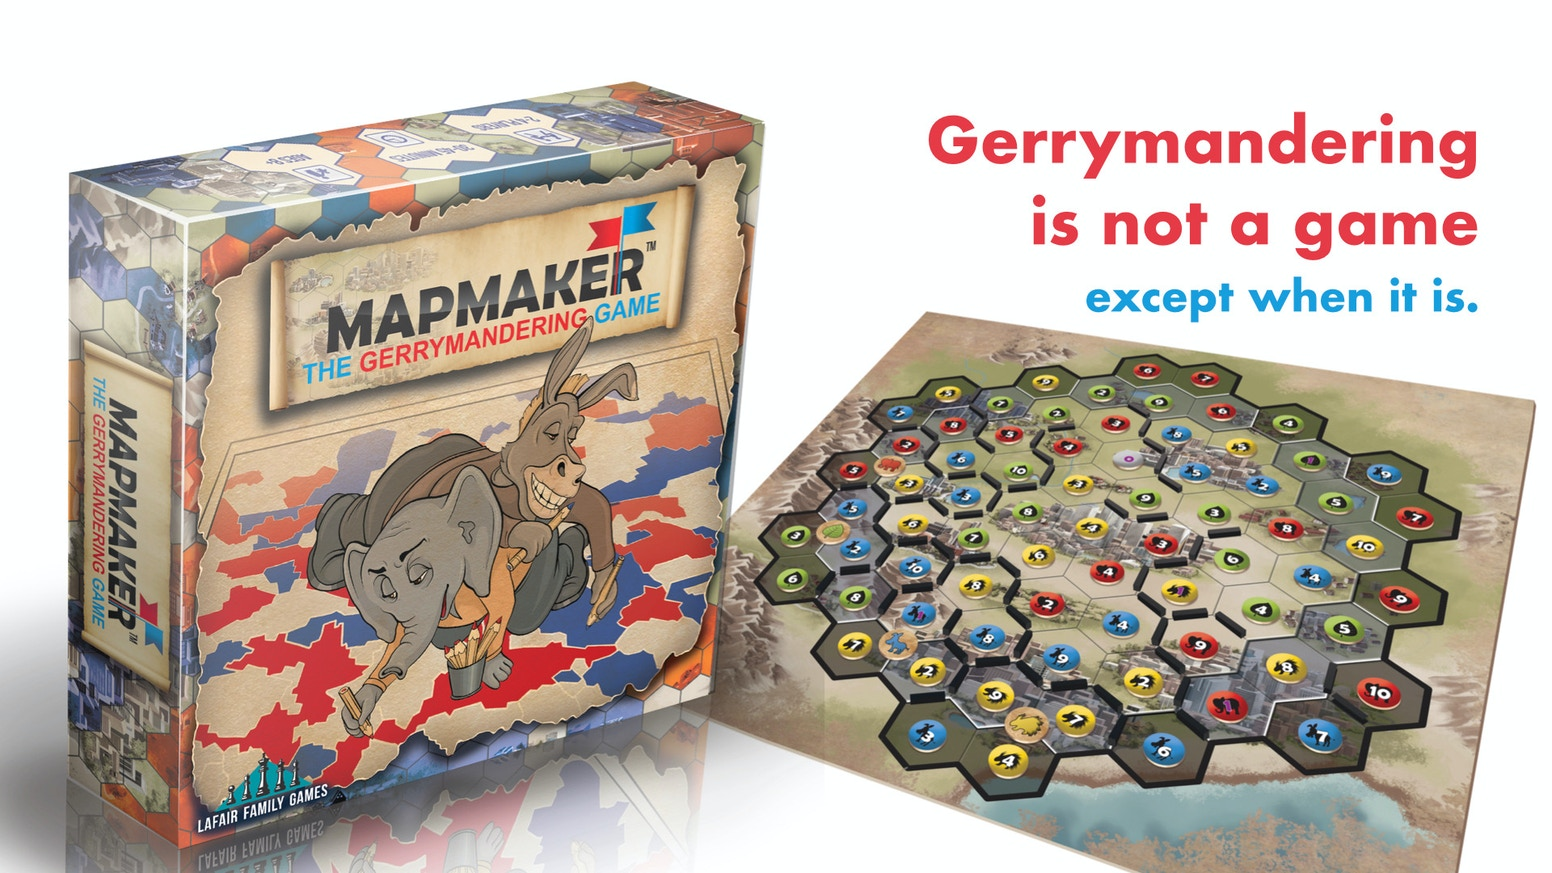 The Great Education Gerrymander Another >> Mapmaker The Gerrymandering Game By Lafair Family Games Kickstarter